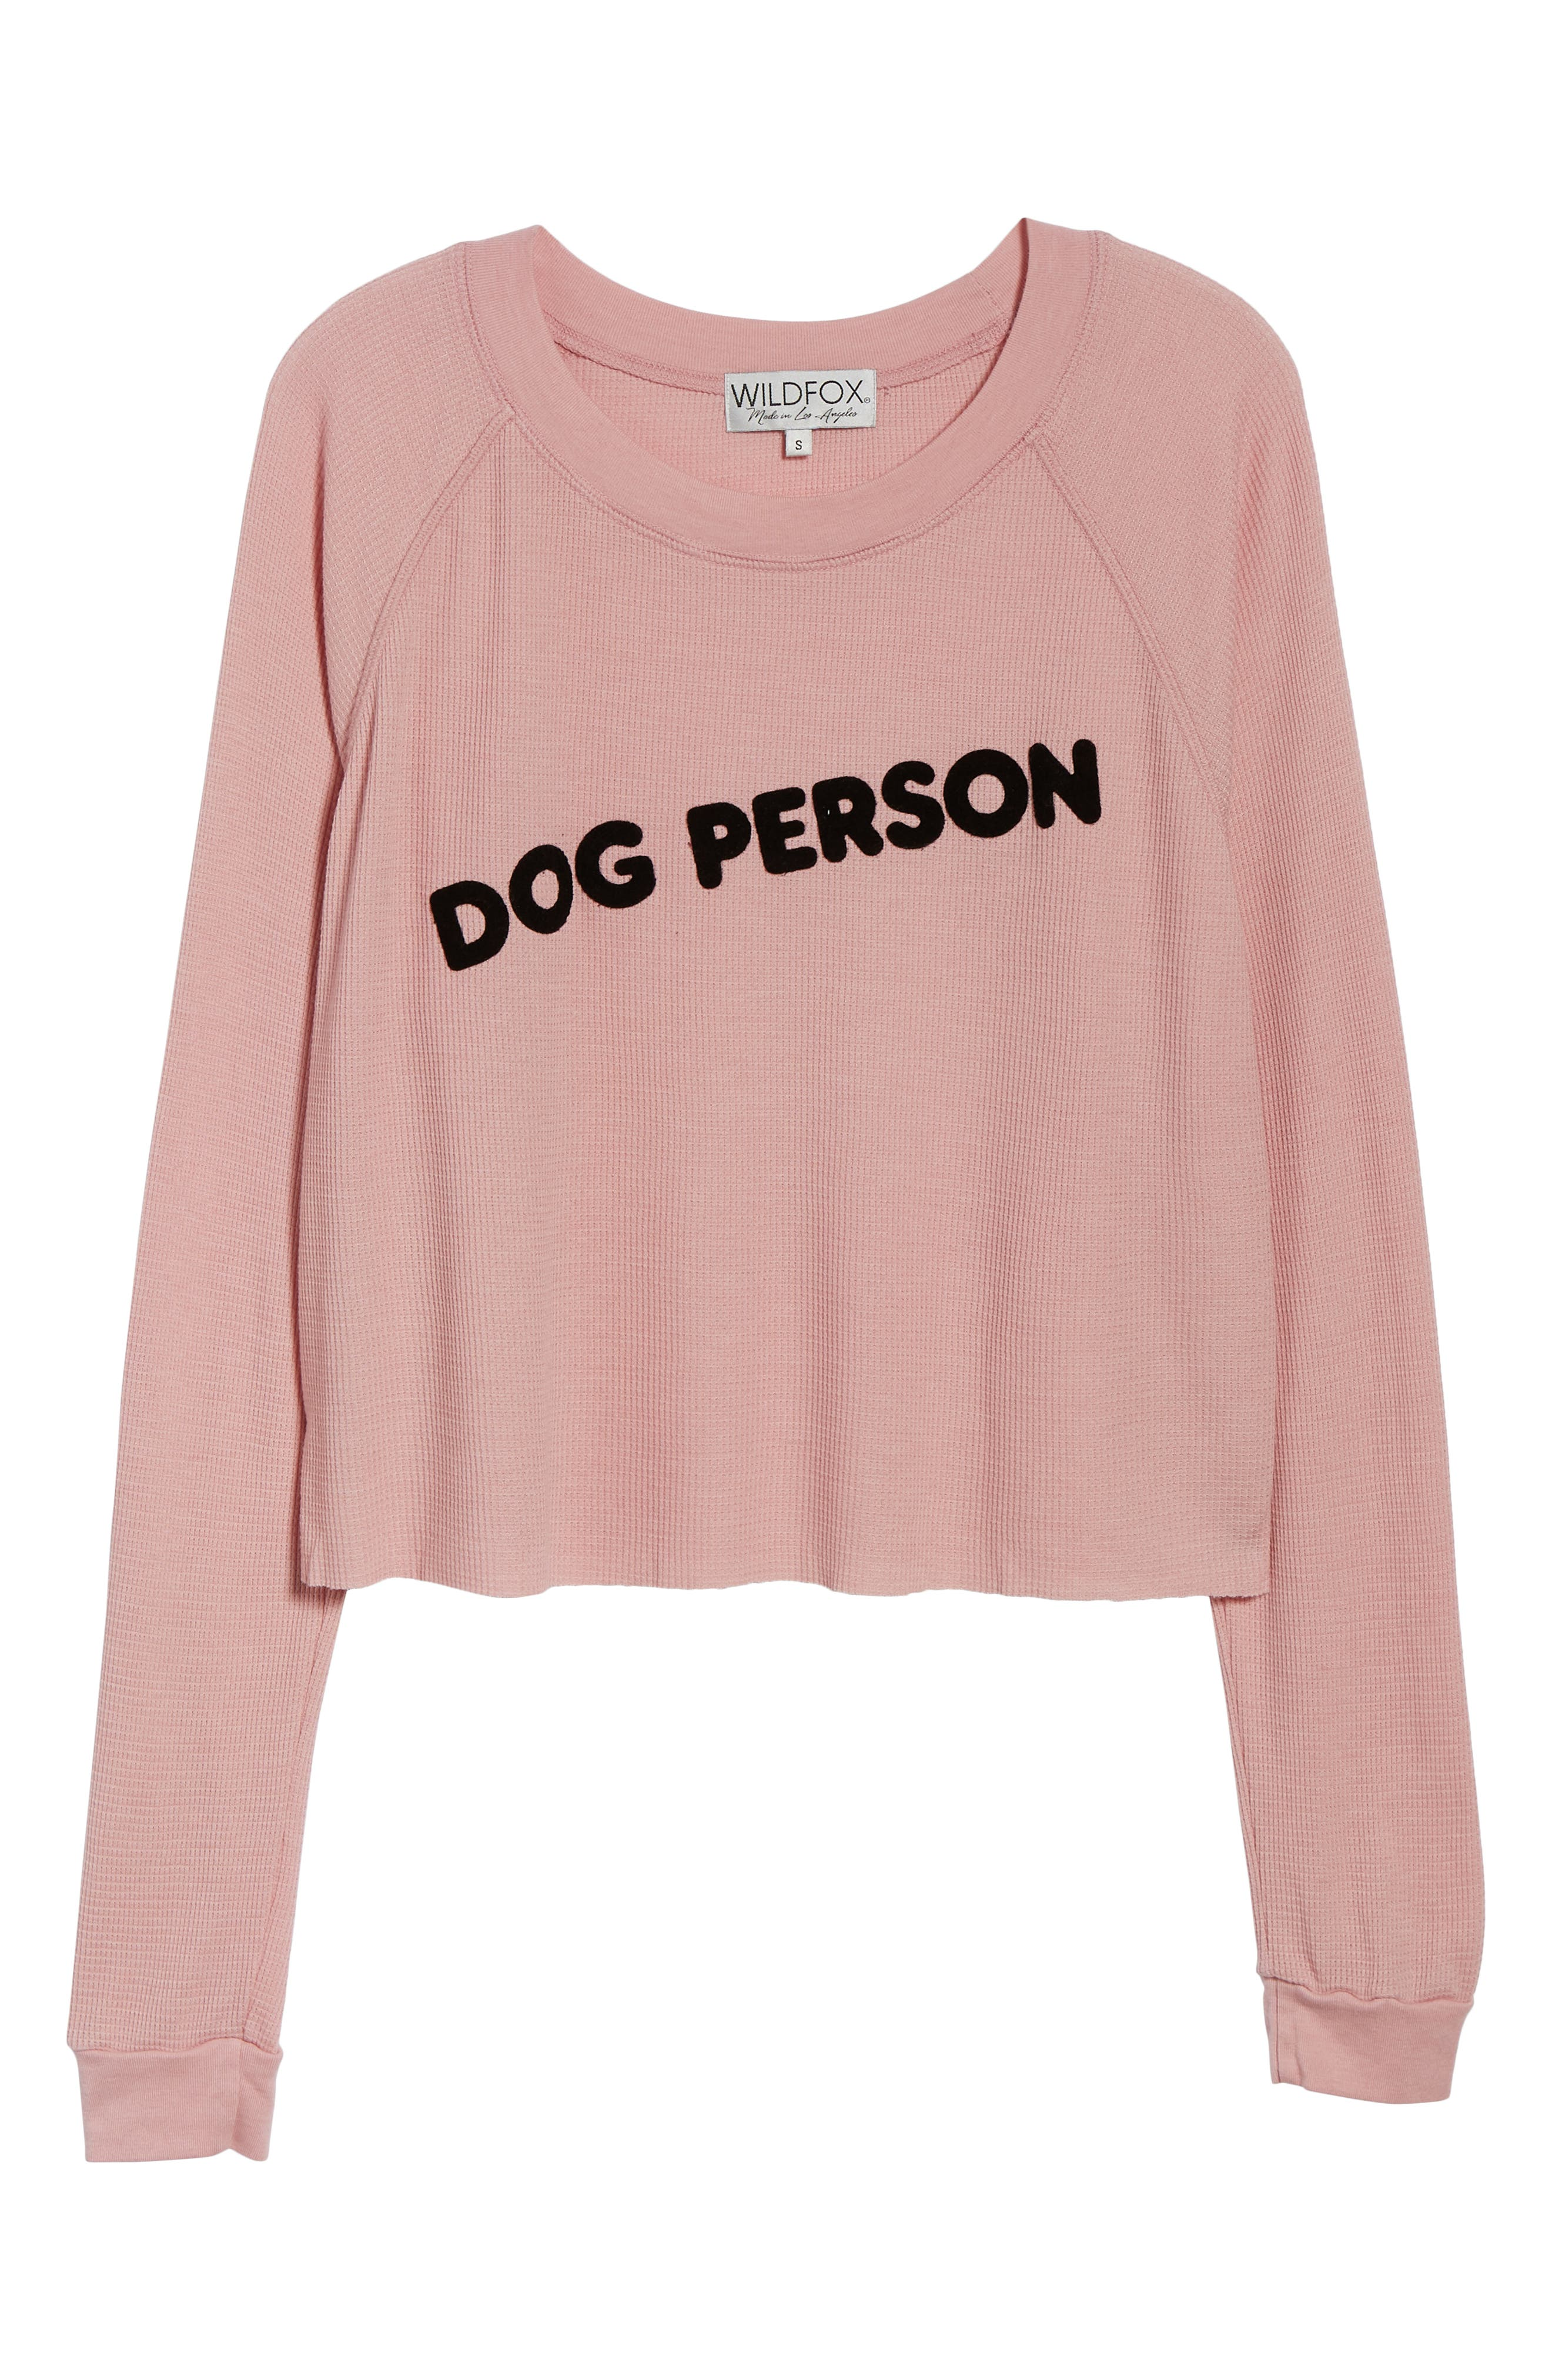 Monte Dog Person Thermal Top,                             Alternate thumbnail 6, color,                             651